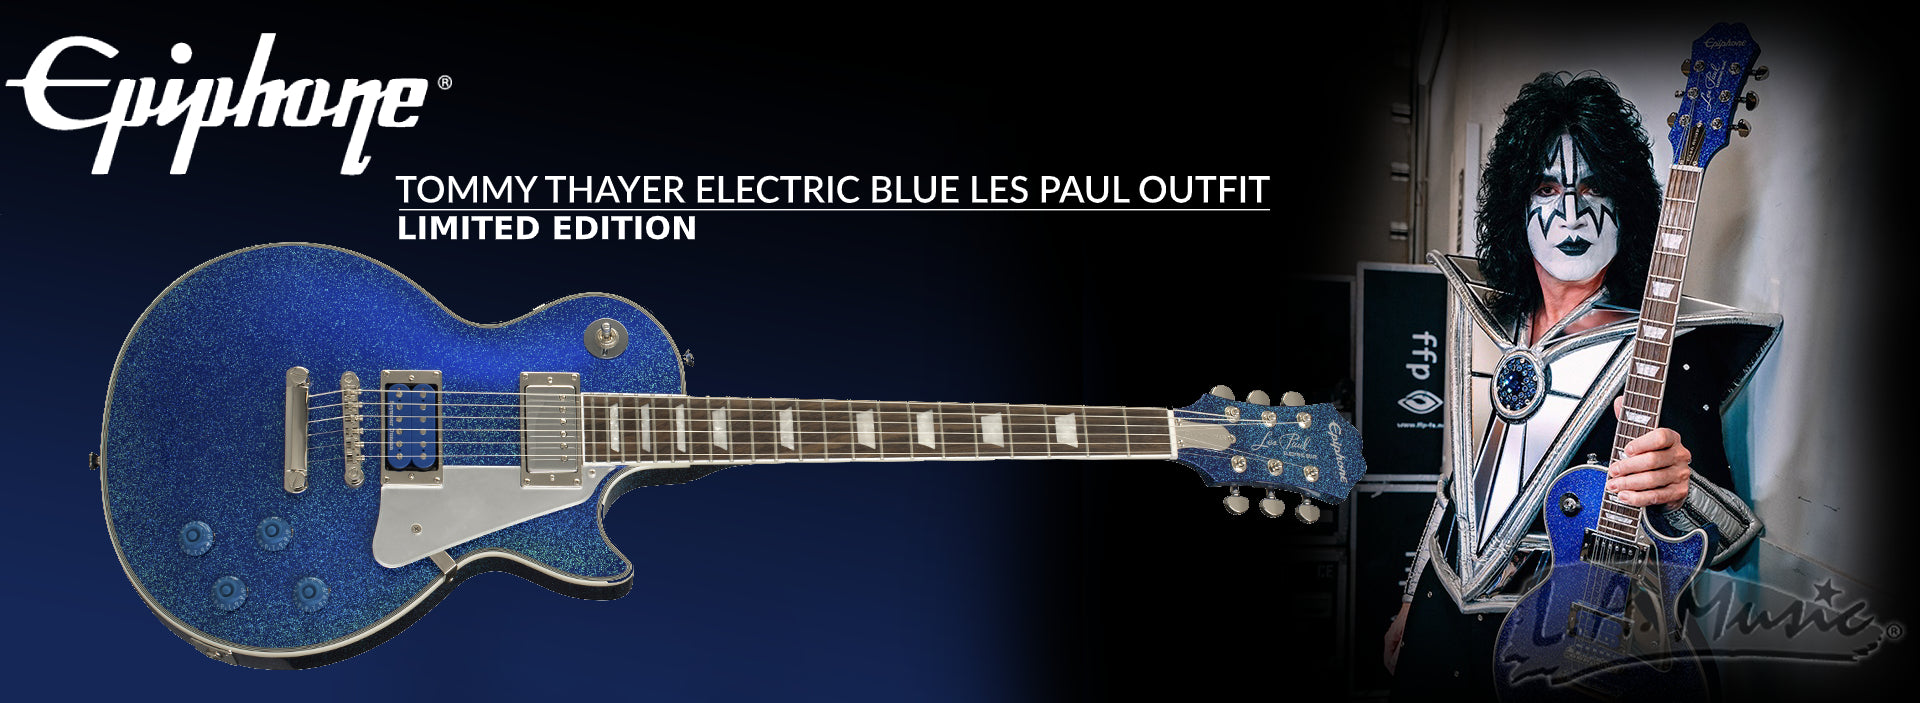 Epiphone Tommy Thayer Electric Blue Signature Les Paul Outfit LIMITED EDITION